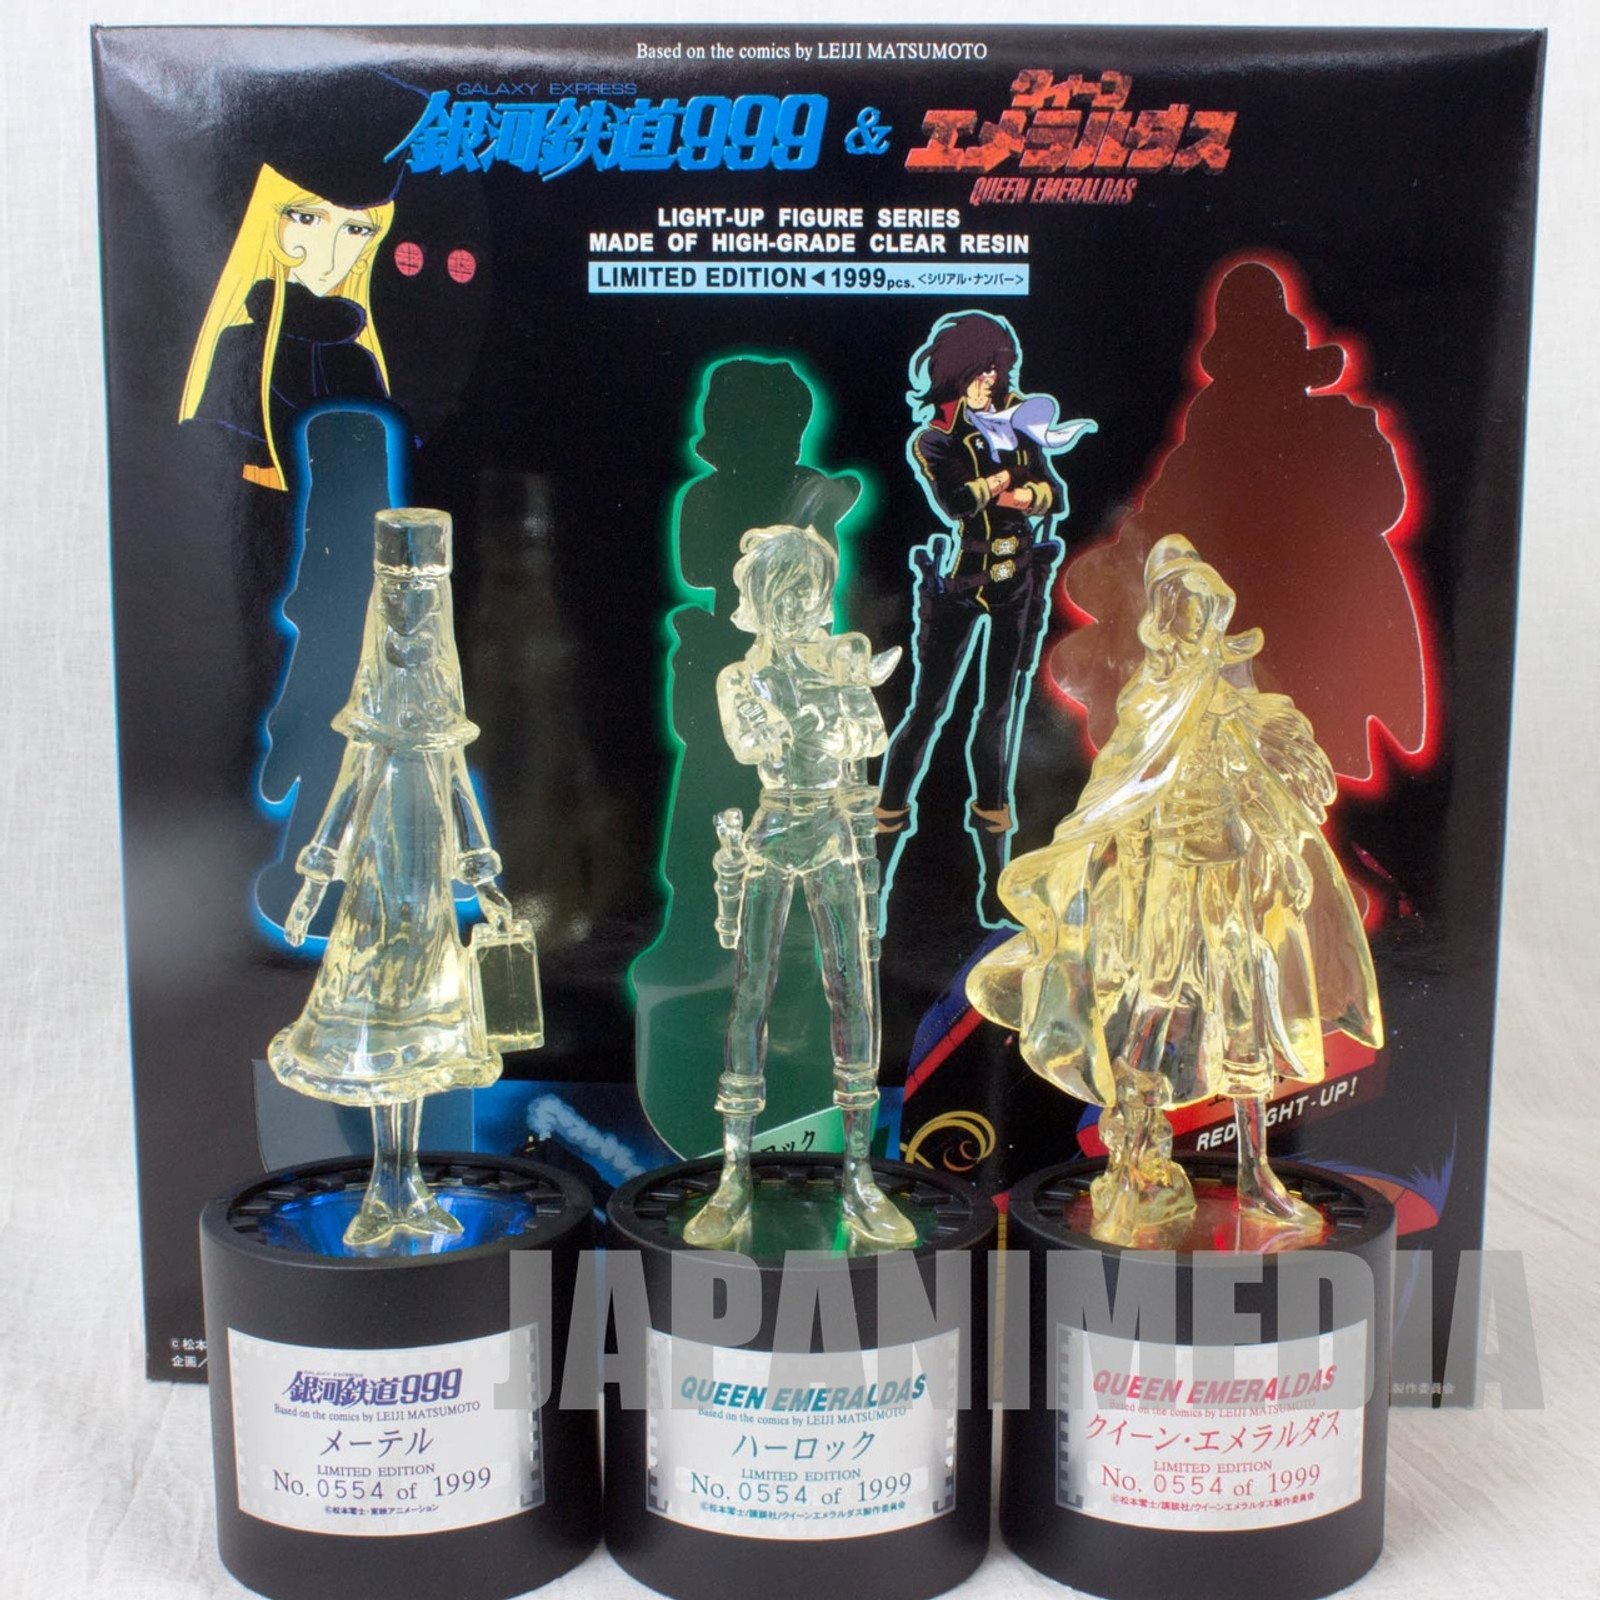 Galaxy Express 999 Maetel & Emeraldas & Harlock Light up Figure 3pc Set Limited